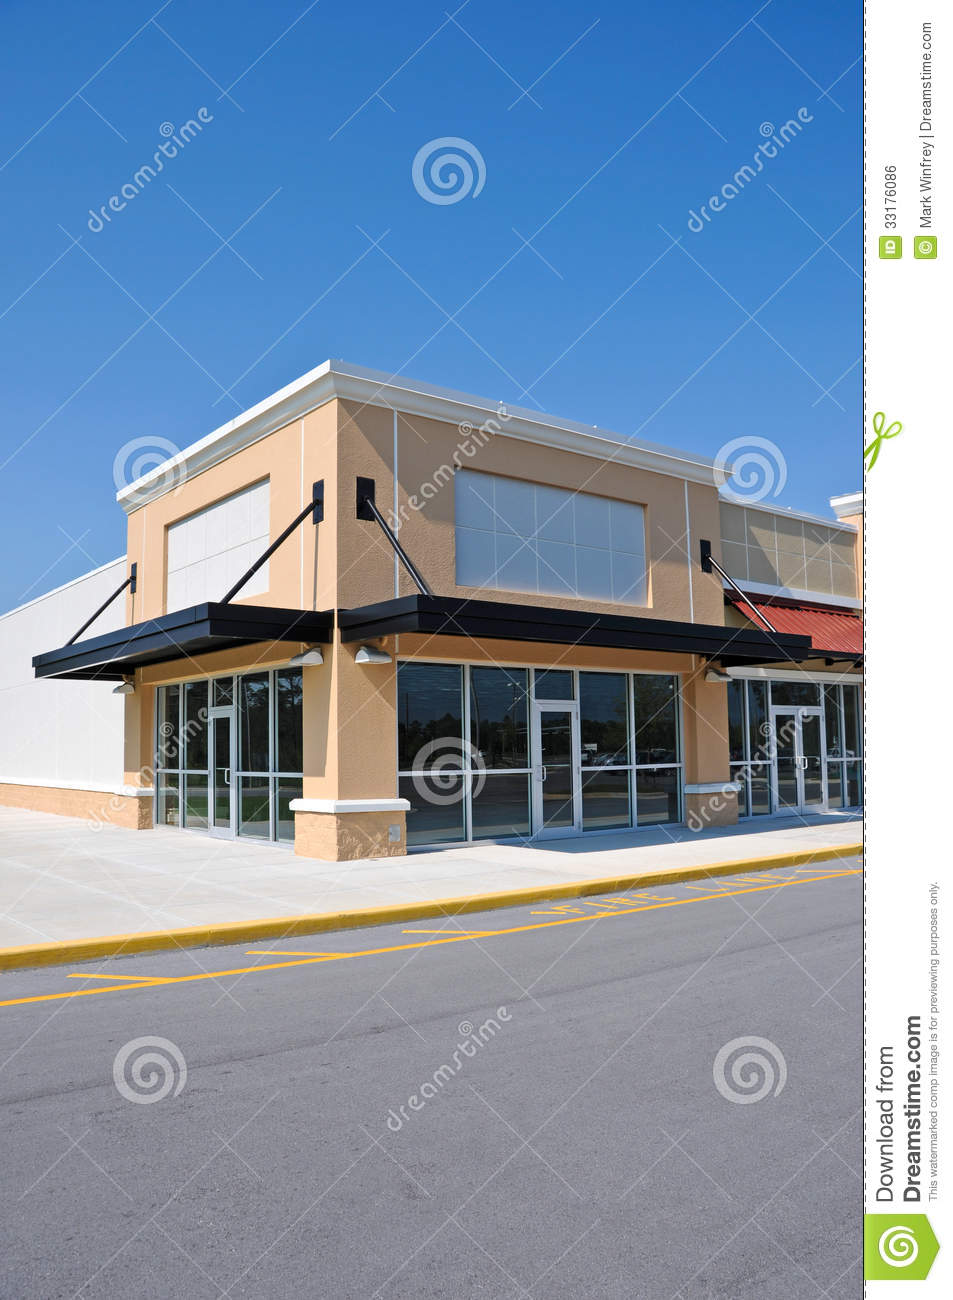 Modern commercial building royalty free stock image for Modern commercial building